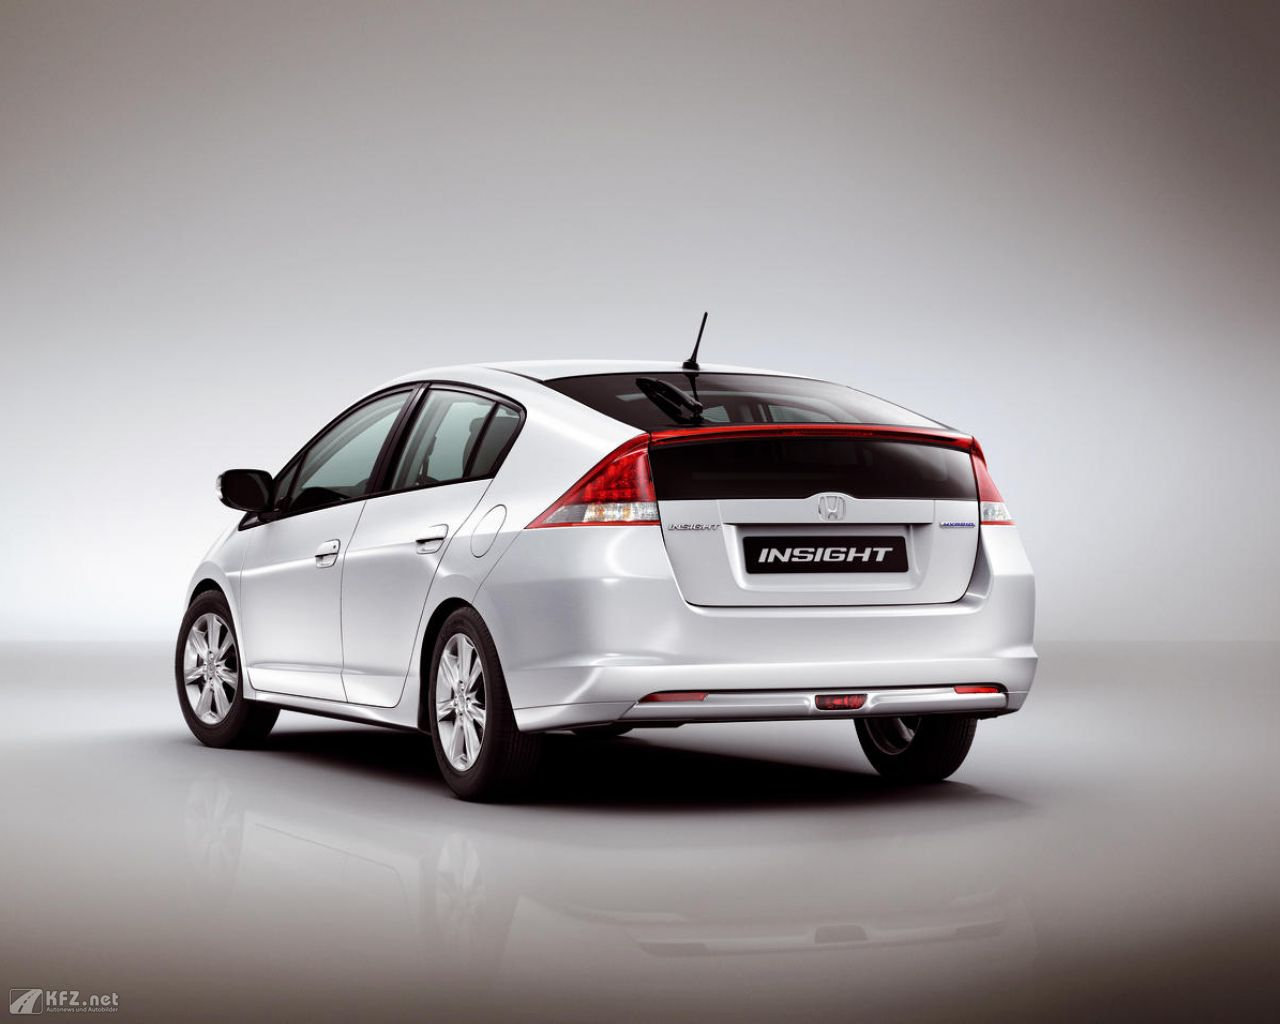 honda-insight-1280x1024-131